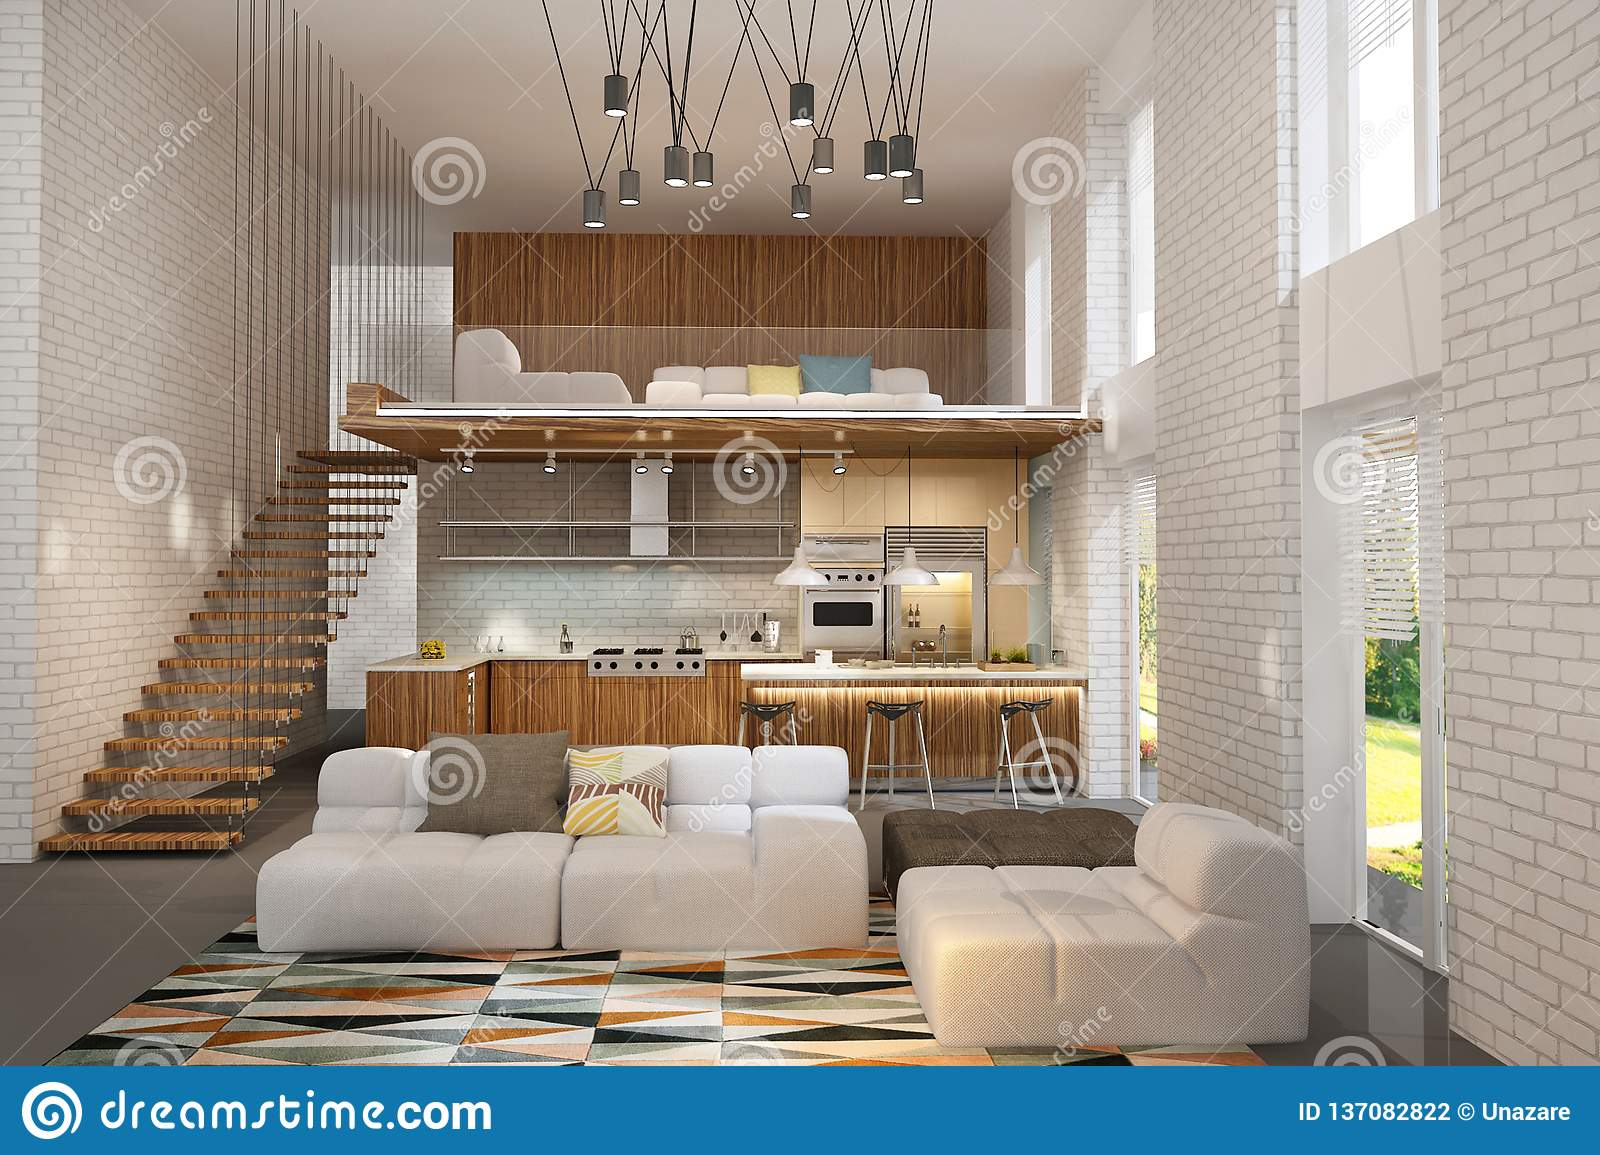 Interior of living room in one space with kitchen made in modern style with scandinavian mood in light colors with brick walls